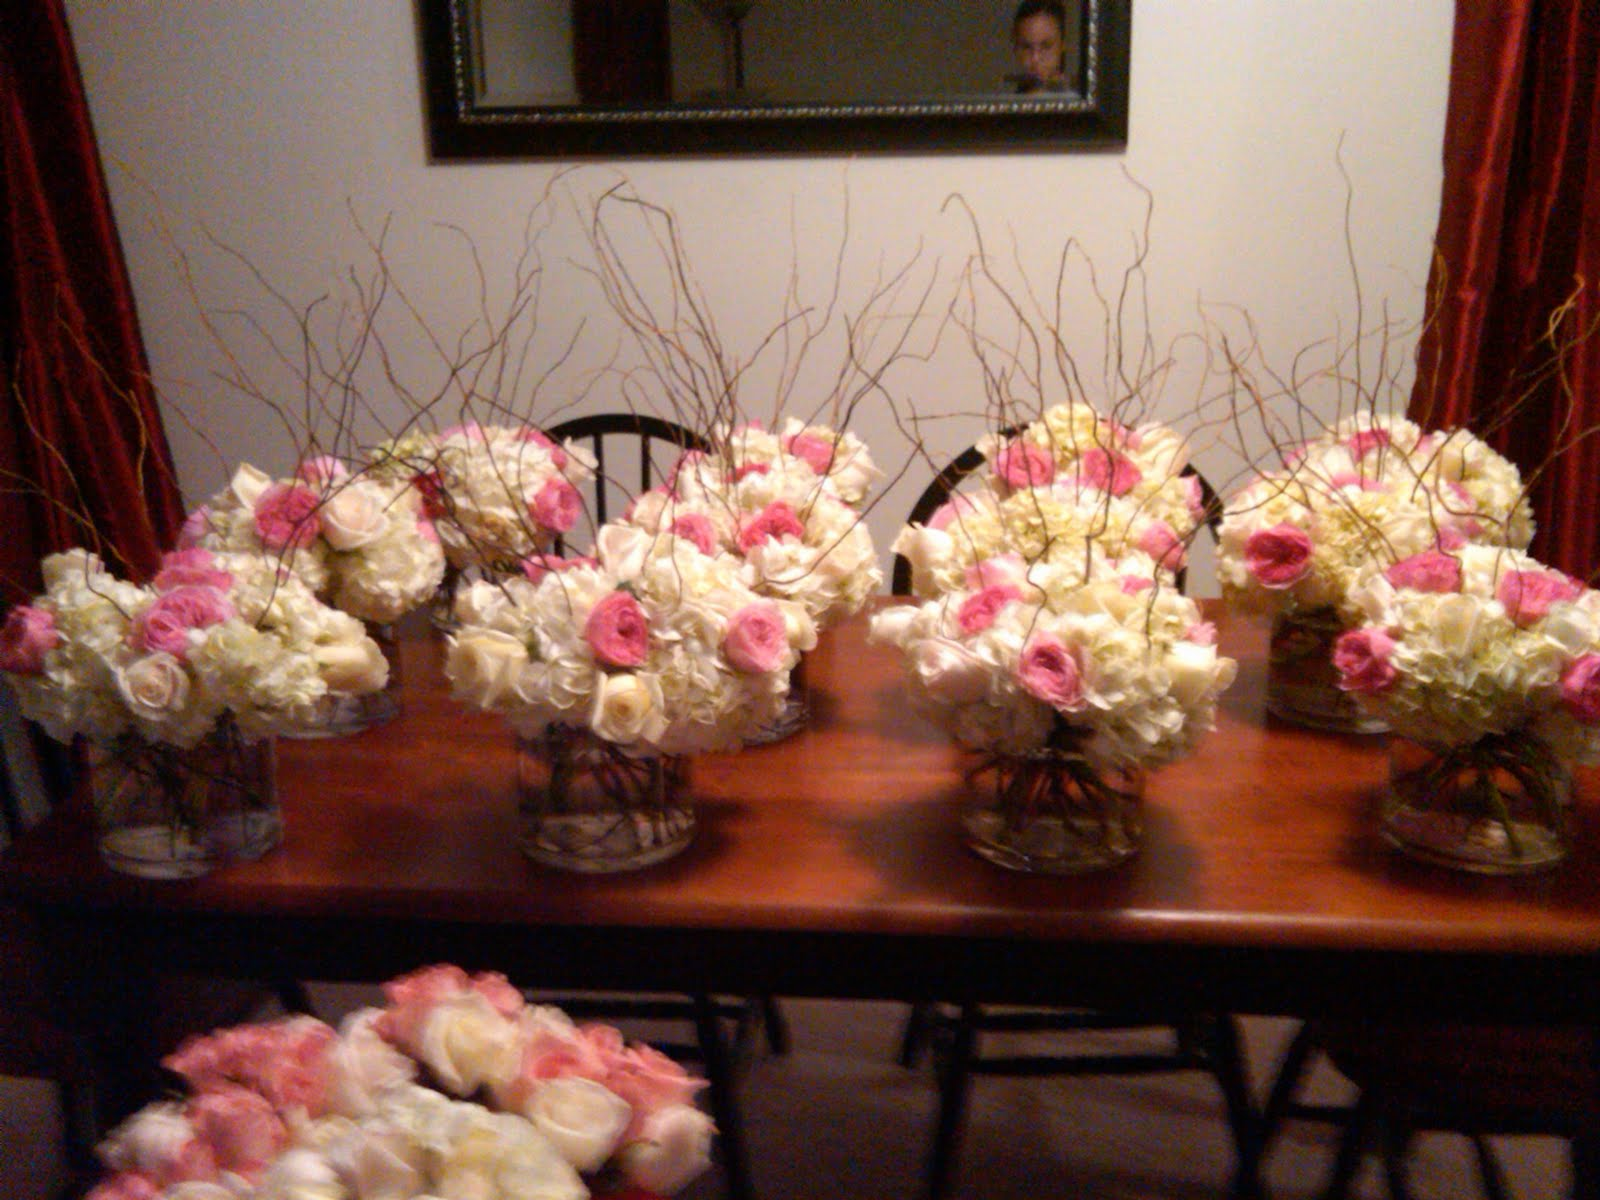 Diy Wedding Bouquets Without Flowers : Diy fall wedding centerpieces on a budget viewing gallery